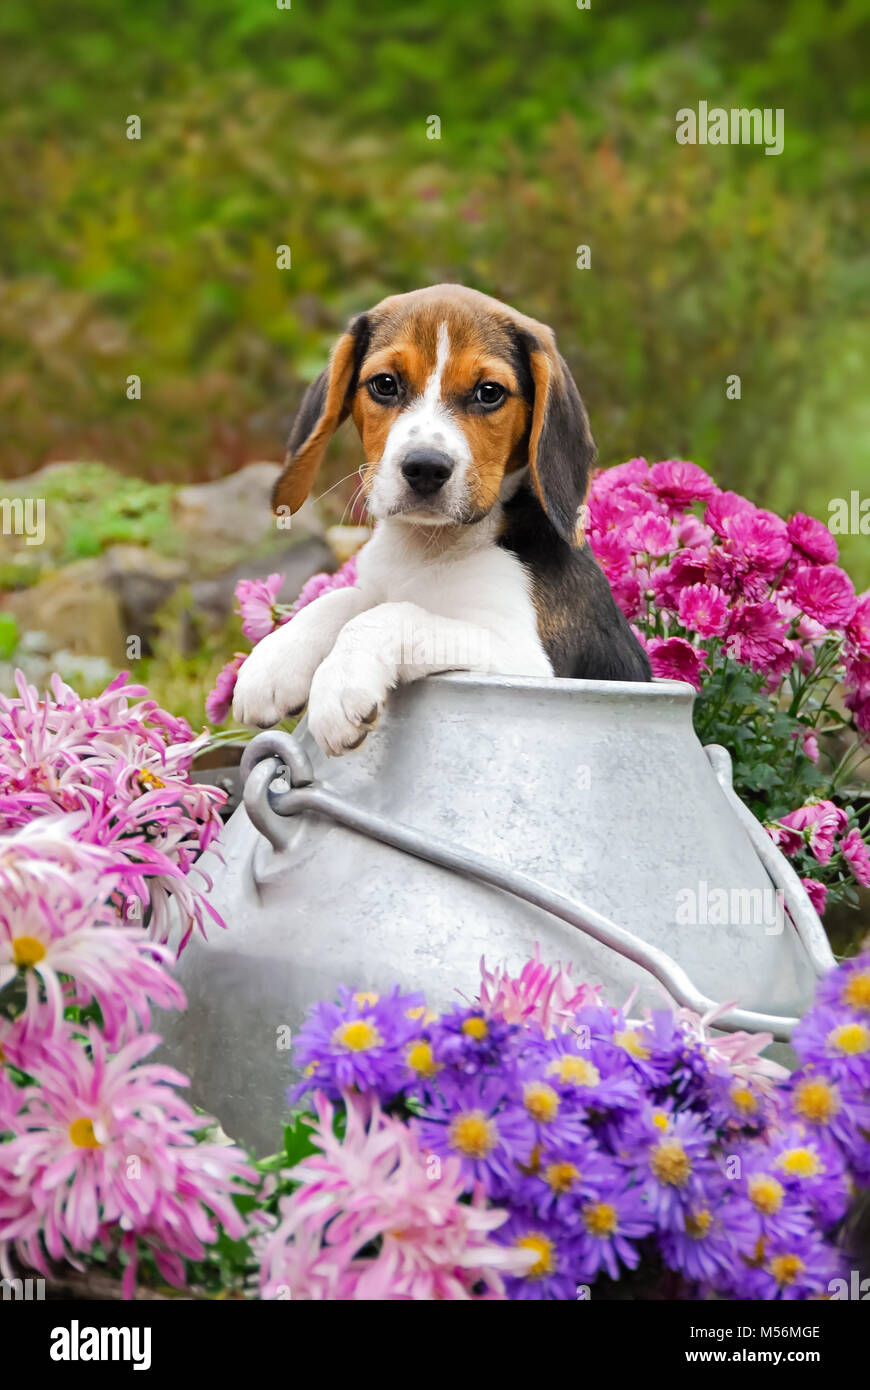 A Young Puppy Eyed Tricolor Beagle Puppy A Scenthound Dog Breed Is Stock Photo Alamy